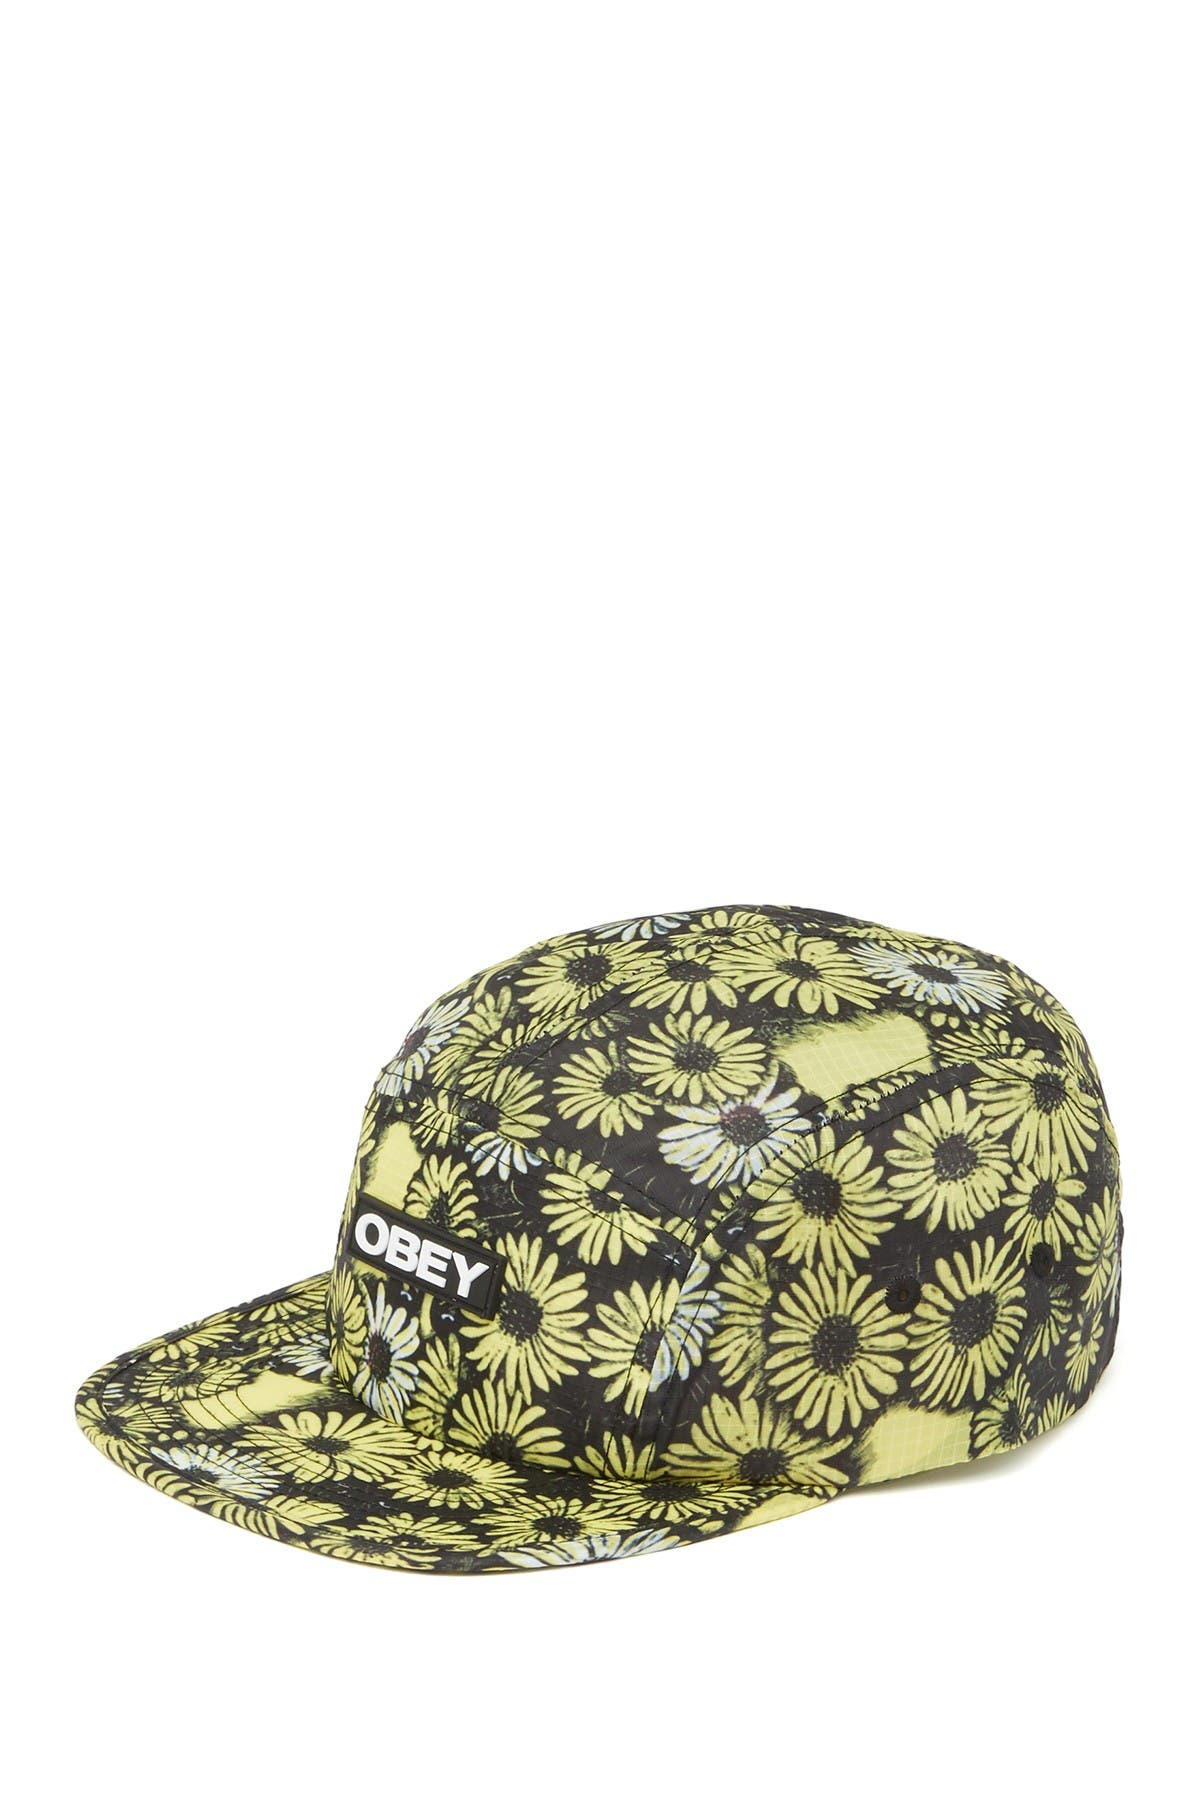 Image of Obey Rapids Hat